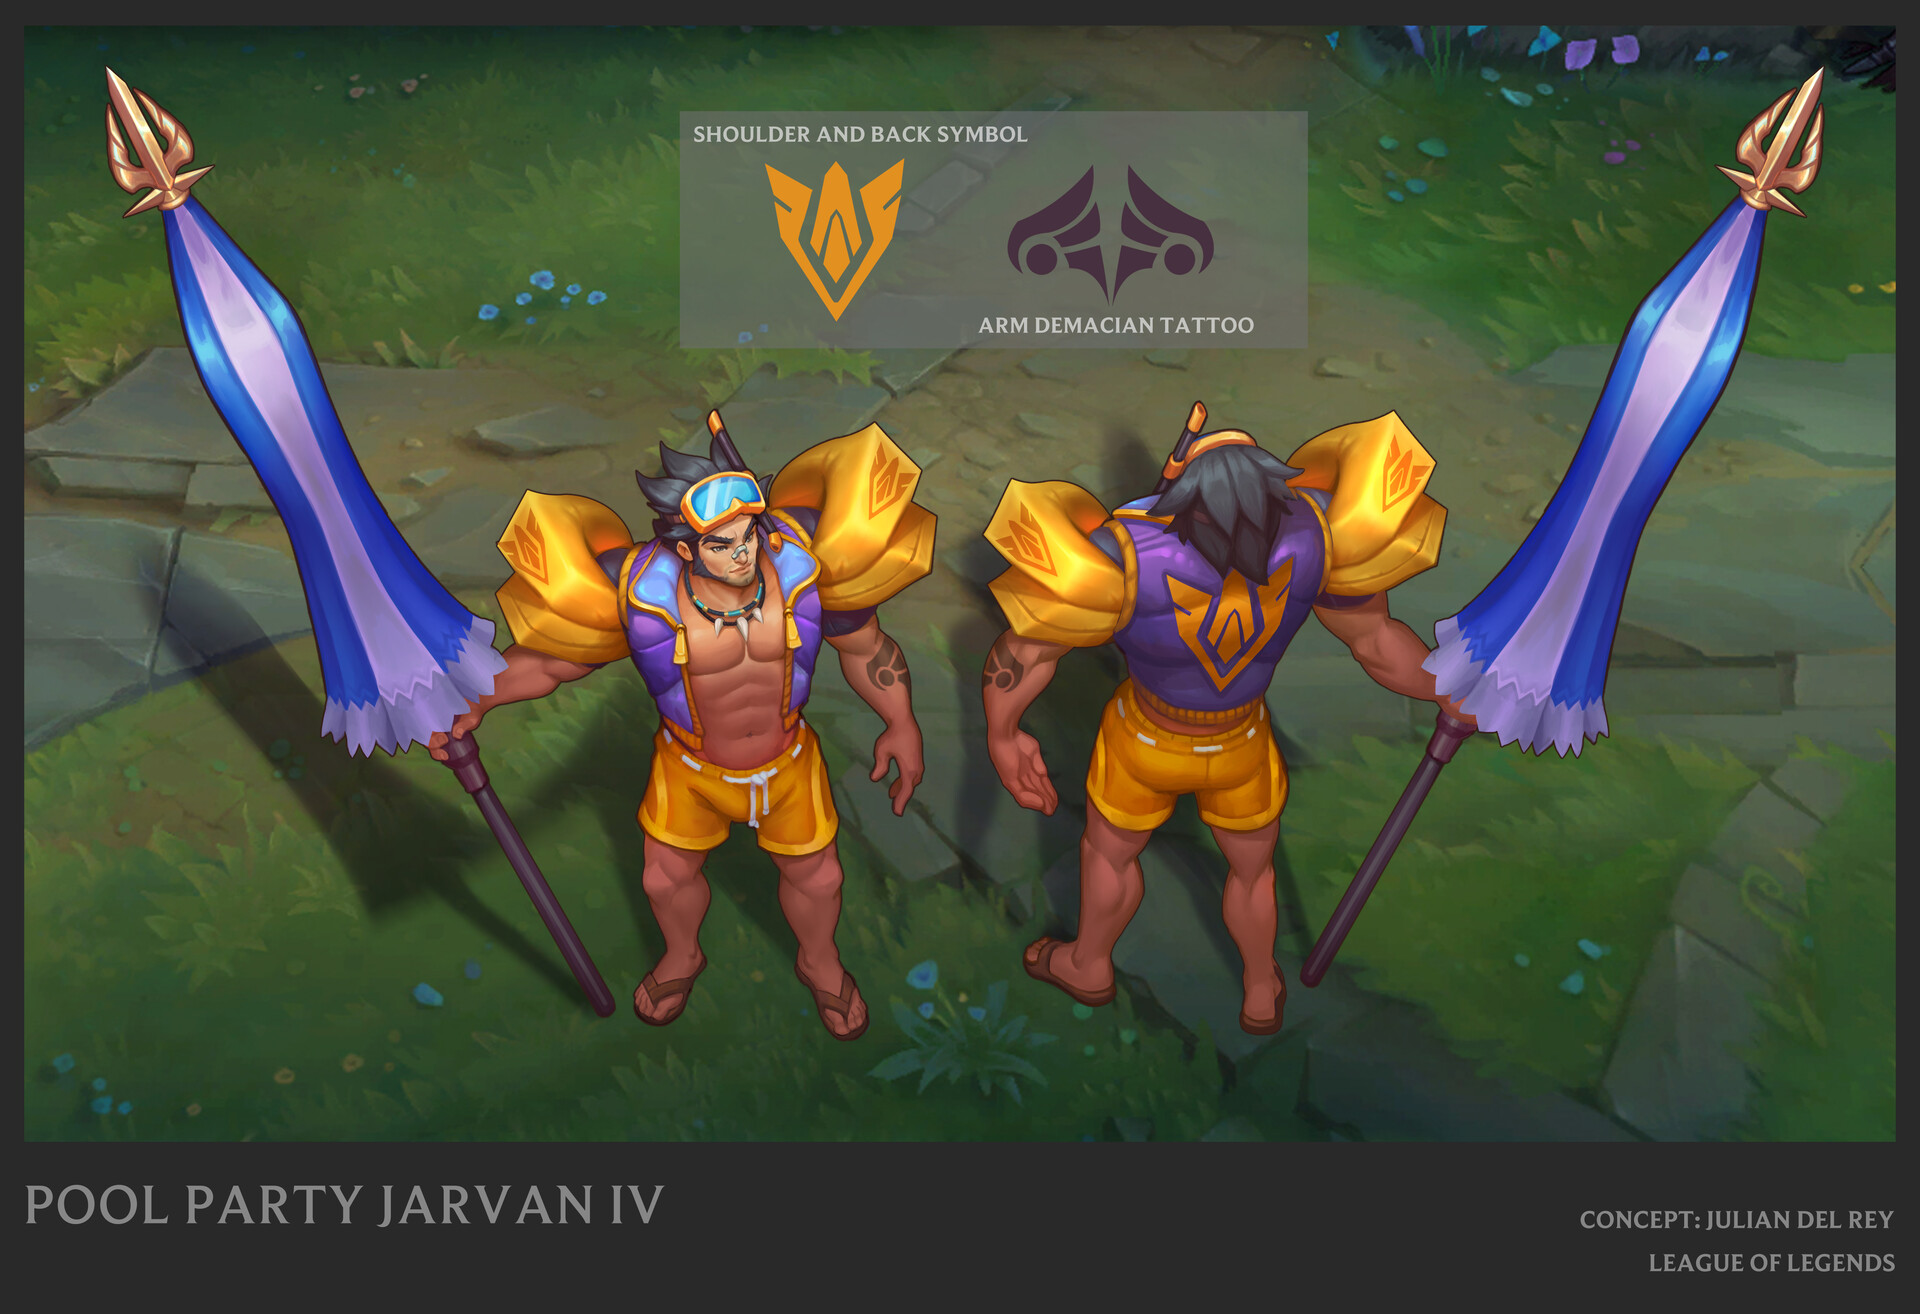 Pool Party Jarvan final concept in game ©Riot Games